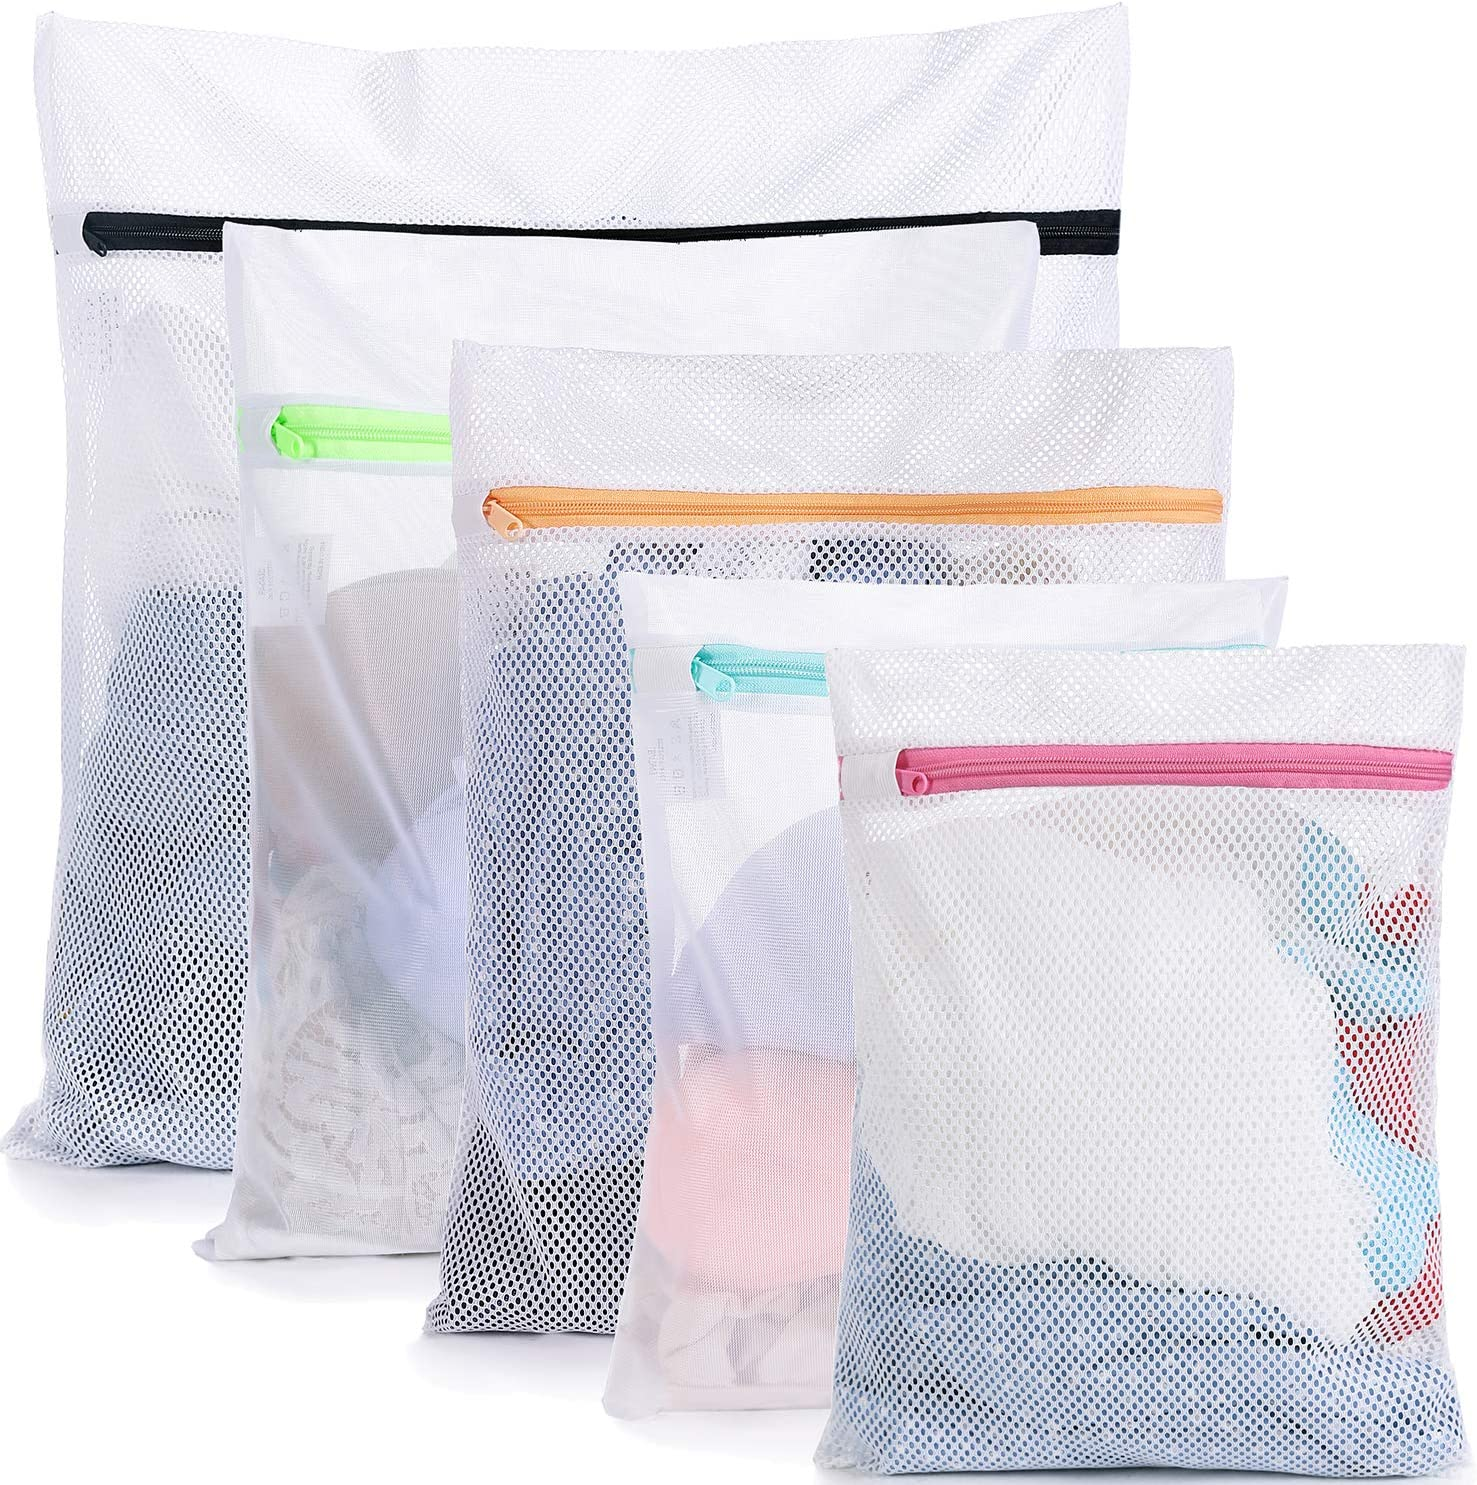 BAGAIL Mesh Laundry Bags for,Blouse, Hosiery, Stocking, Underwear, Bra Lingerie, Travel Laundry Bag (5 Set-New)